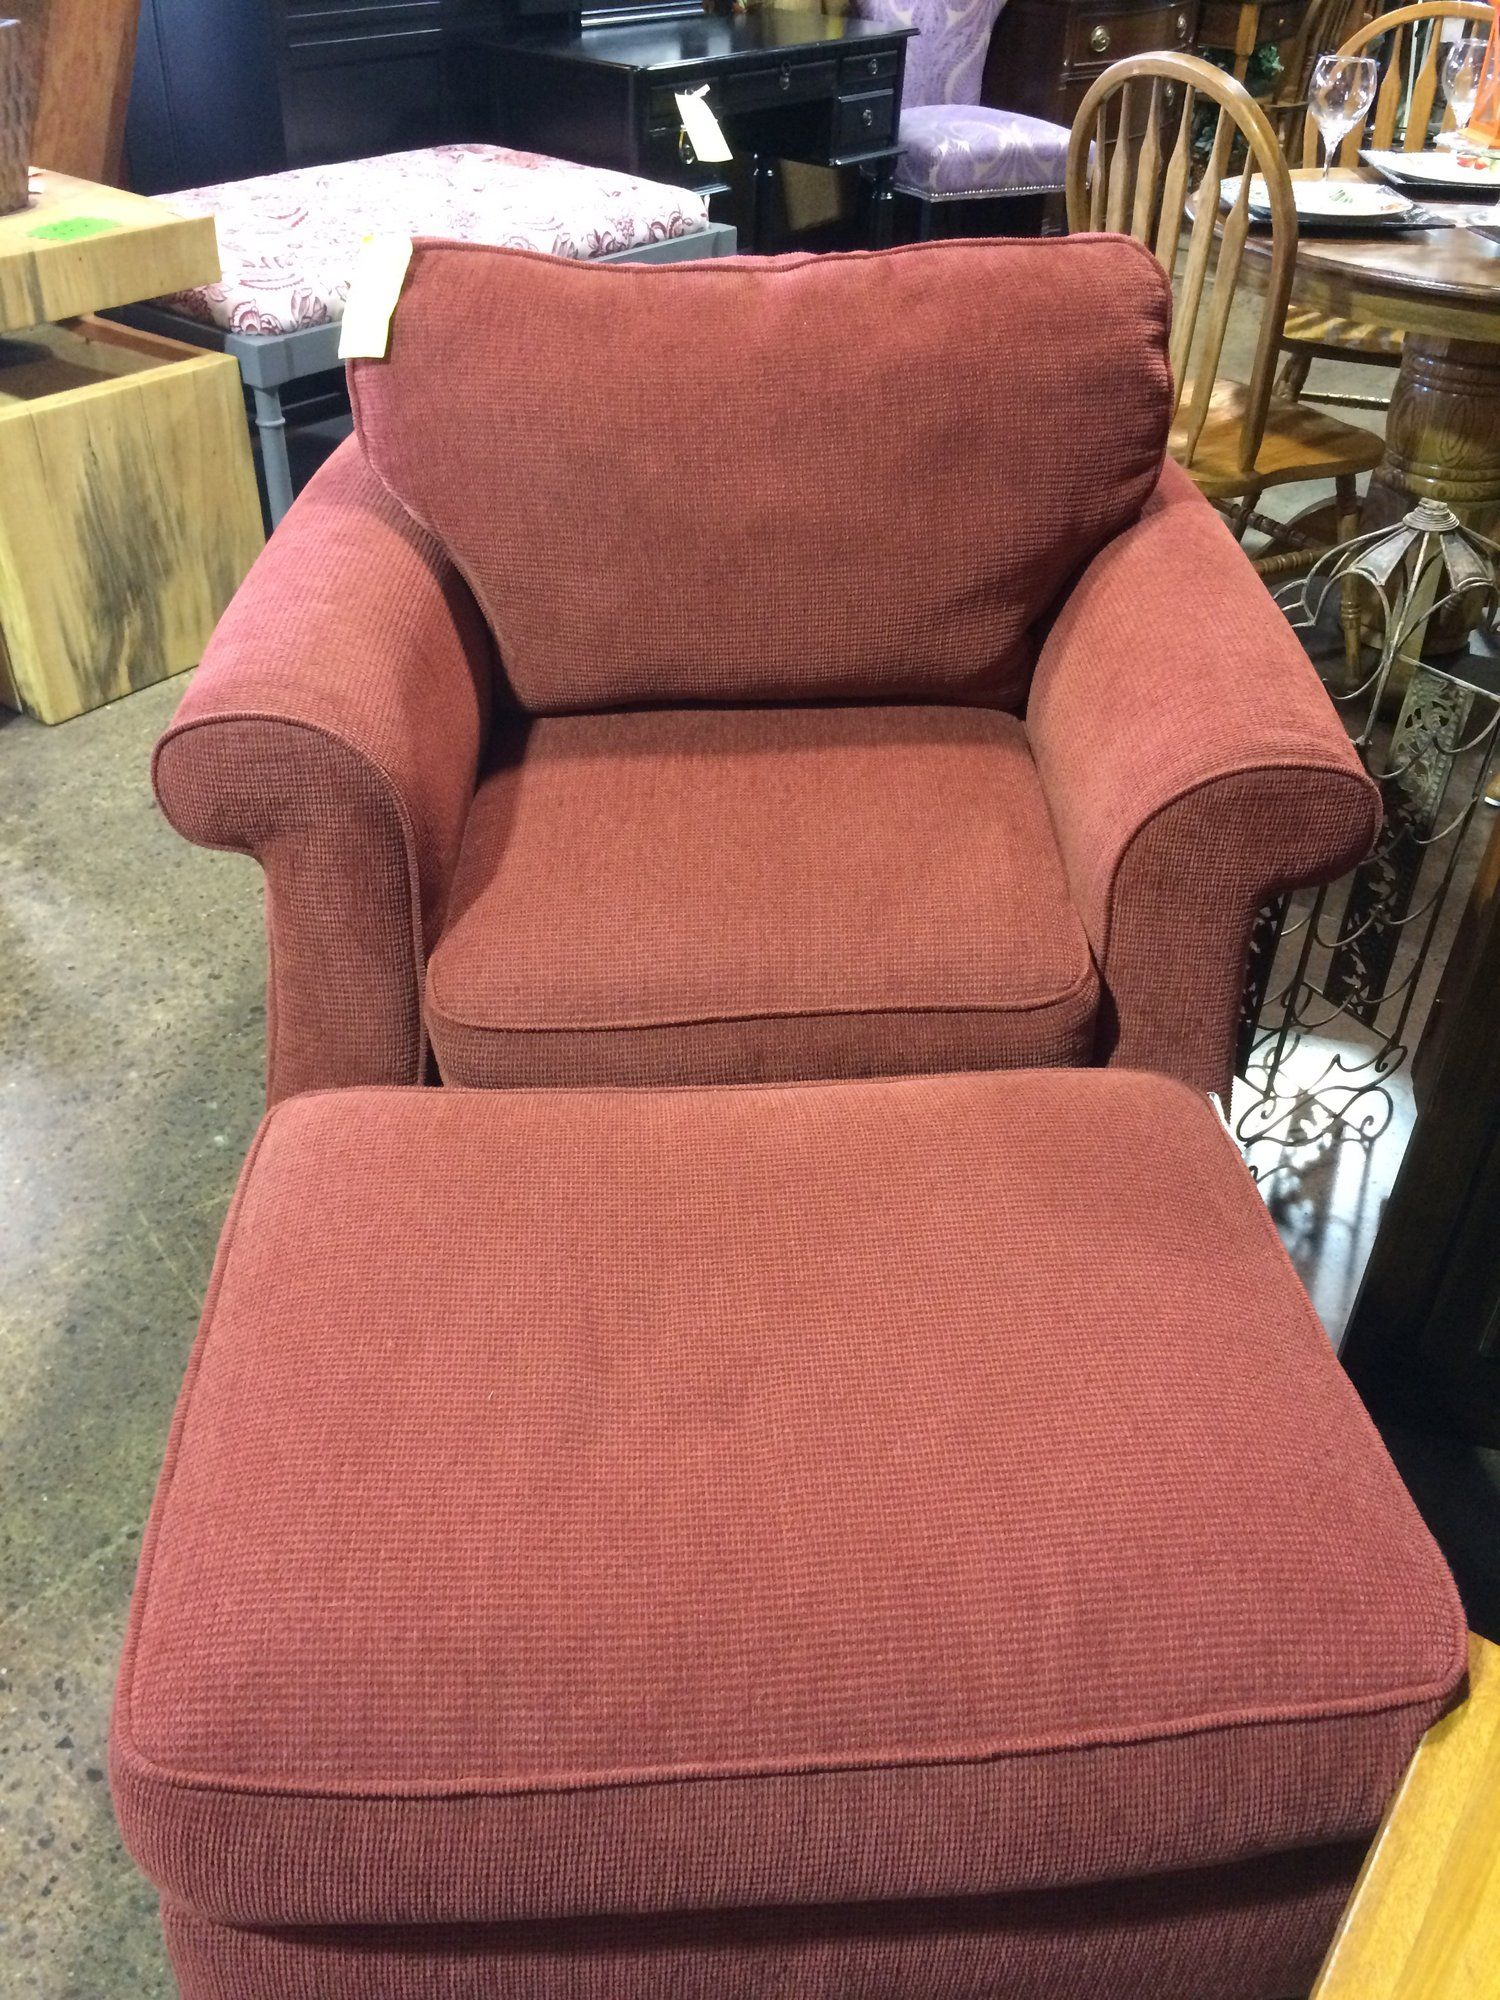 Sink Into This Comfy Chair Put Your Feet Up On The Upholstered Ottoman You Are Now Ready To Watch A Movie Or Red Velvet Chair Comfy Chairs Chair And Ottoman